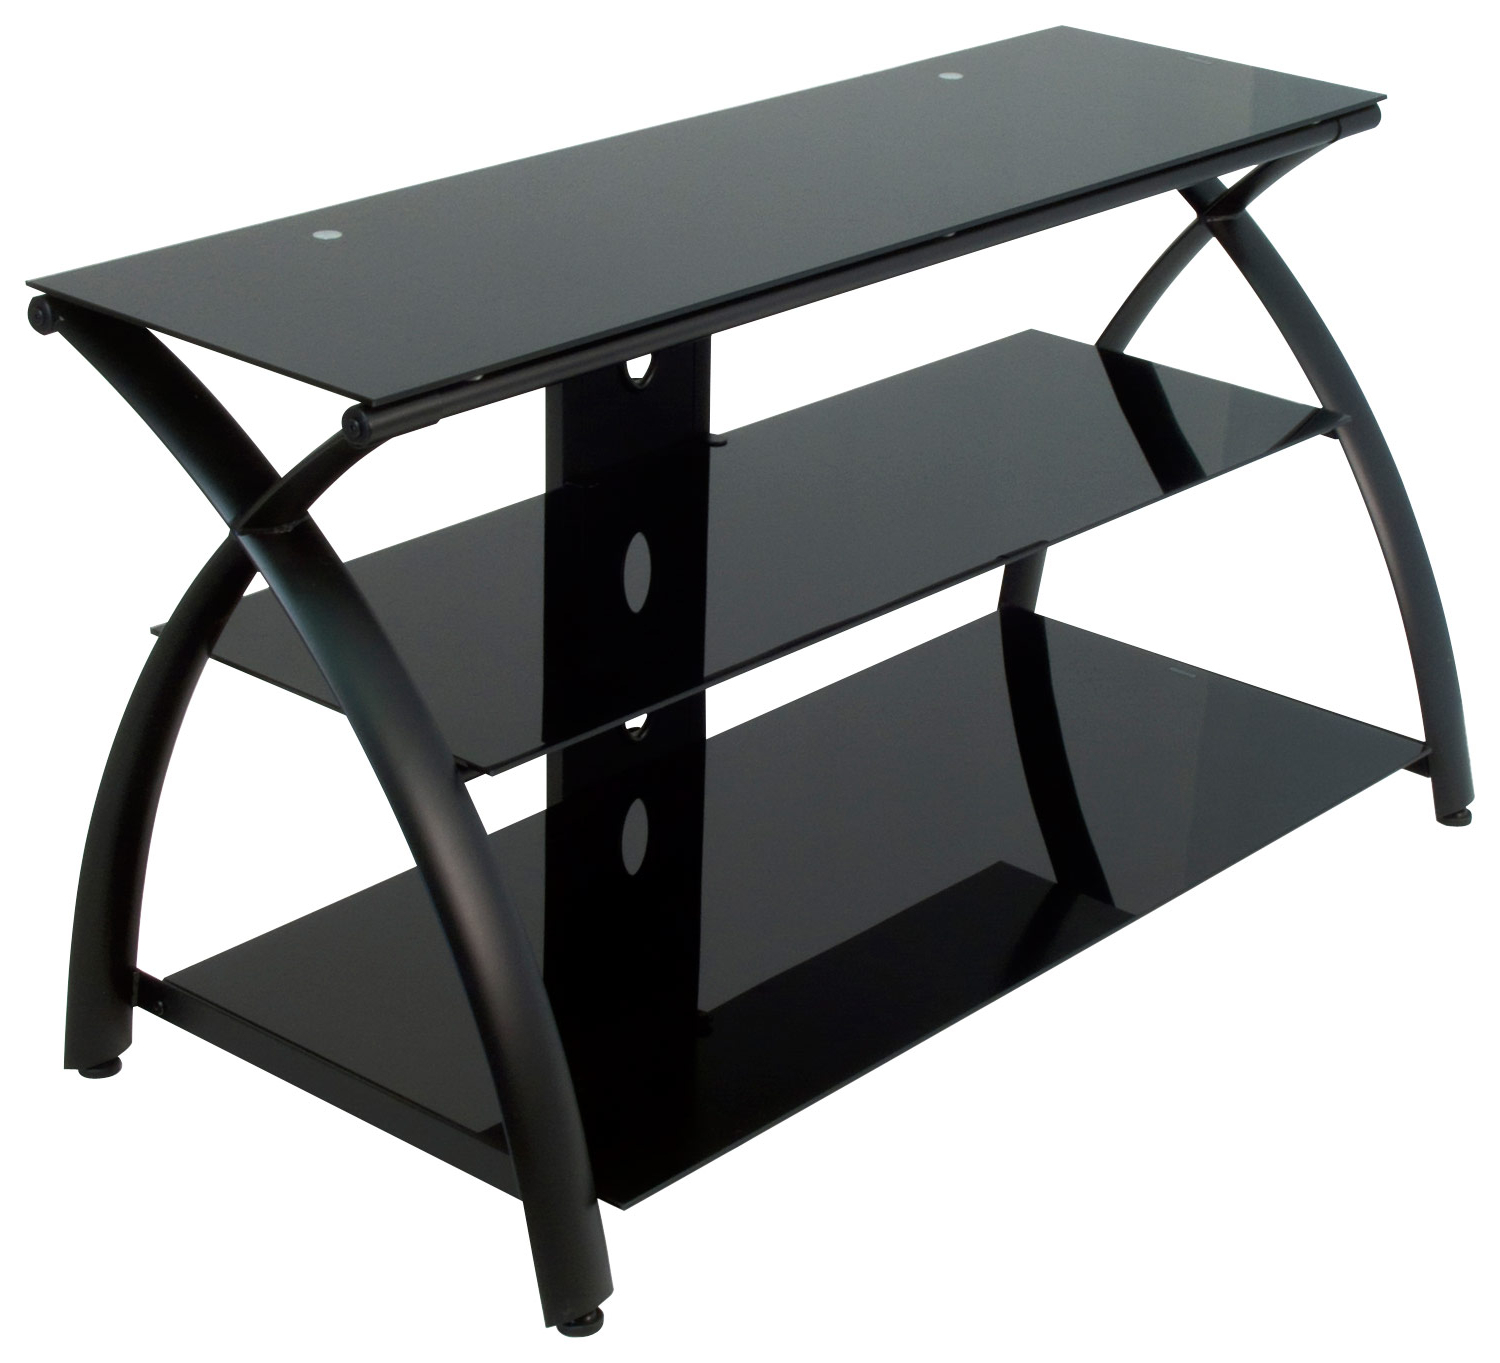 Calico Designs Futura 3 Tier Glass Tv Stand For Most Flat Inside Tier Entertainment Tv Stands In Black (View 18 of 20)